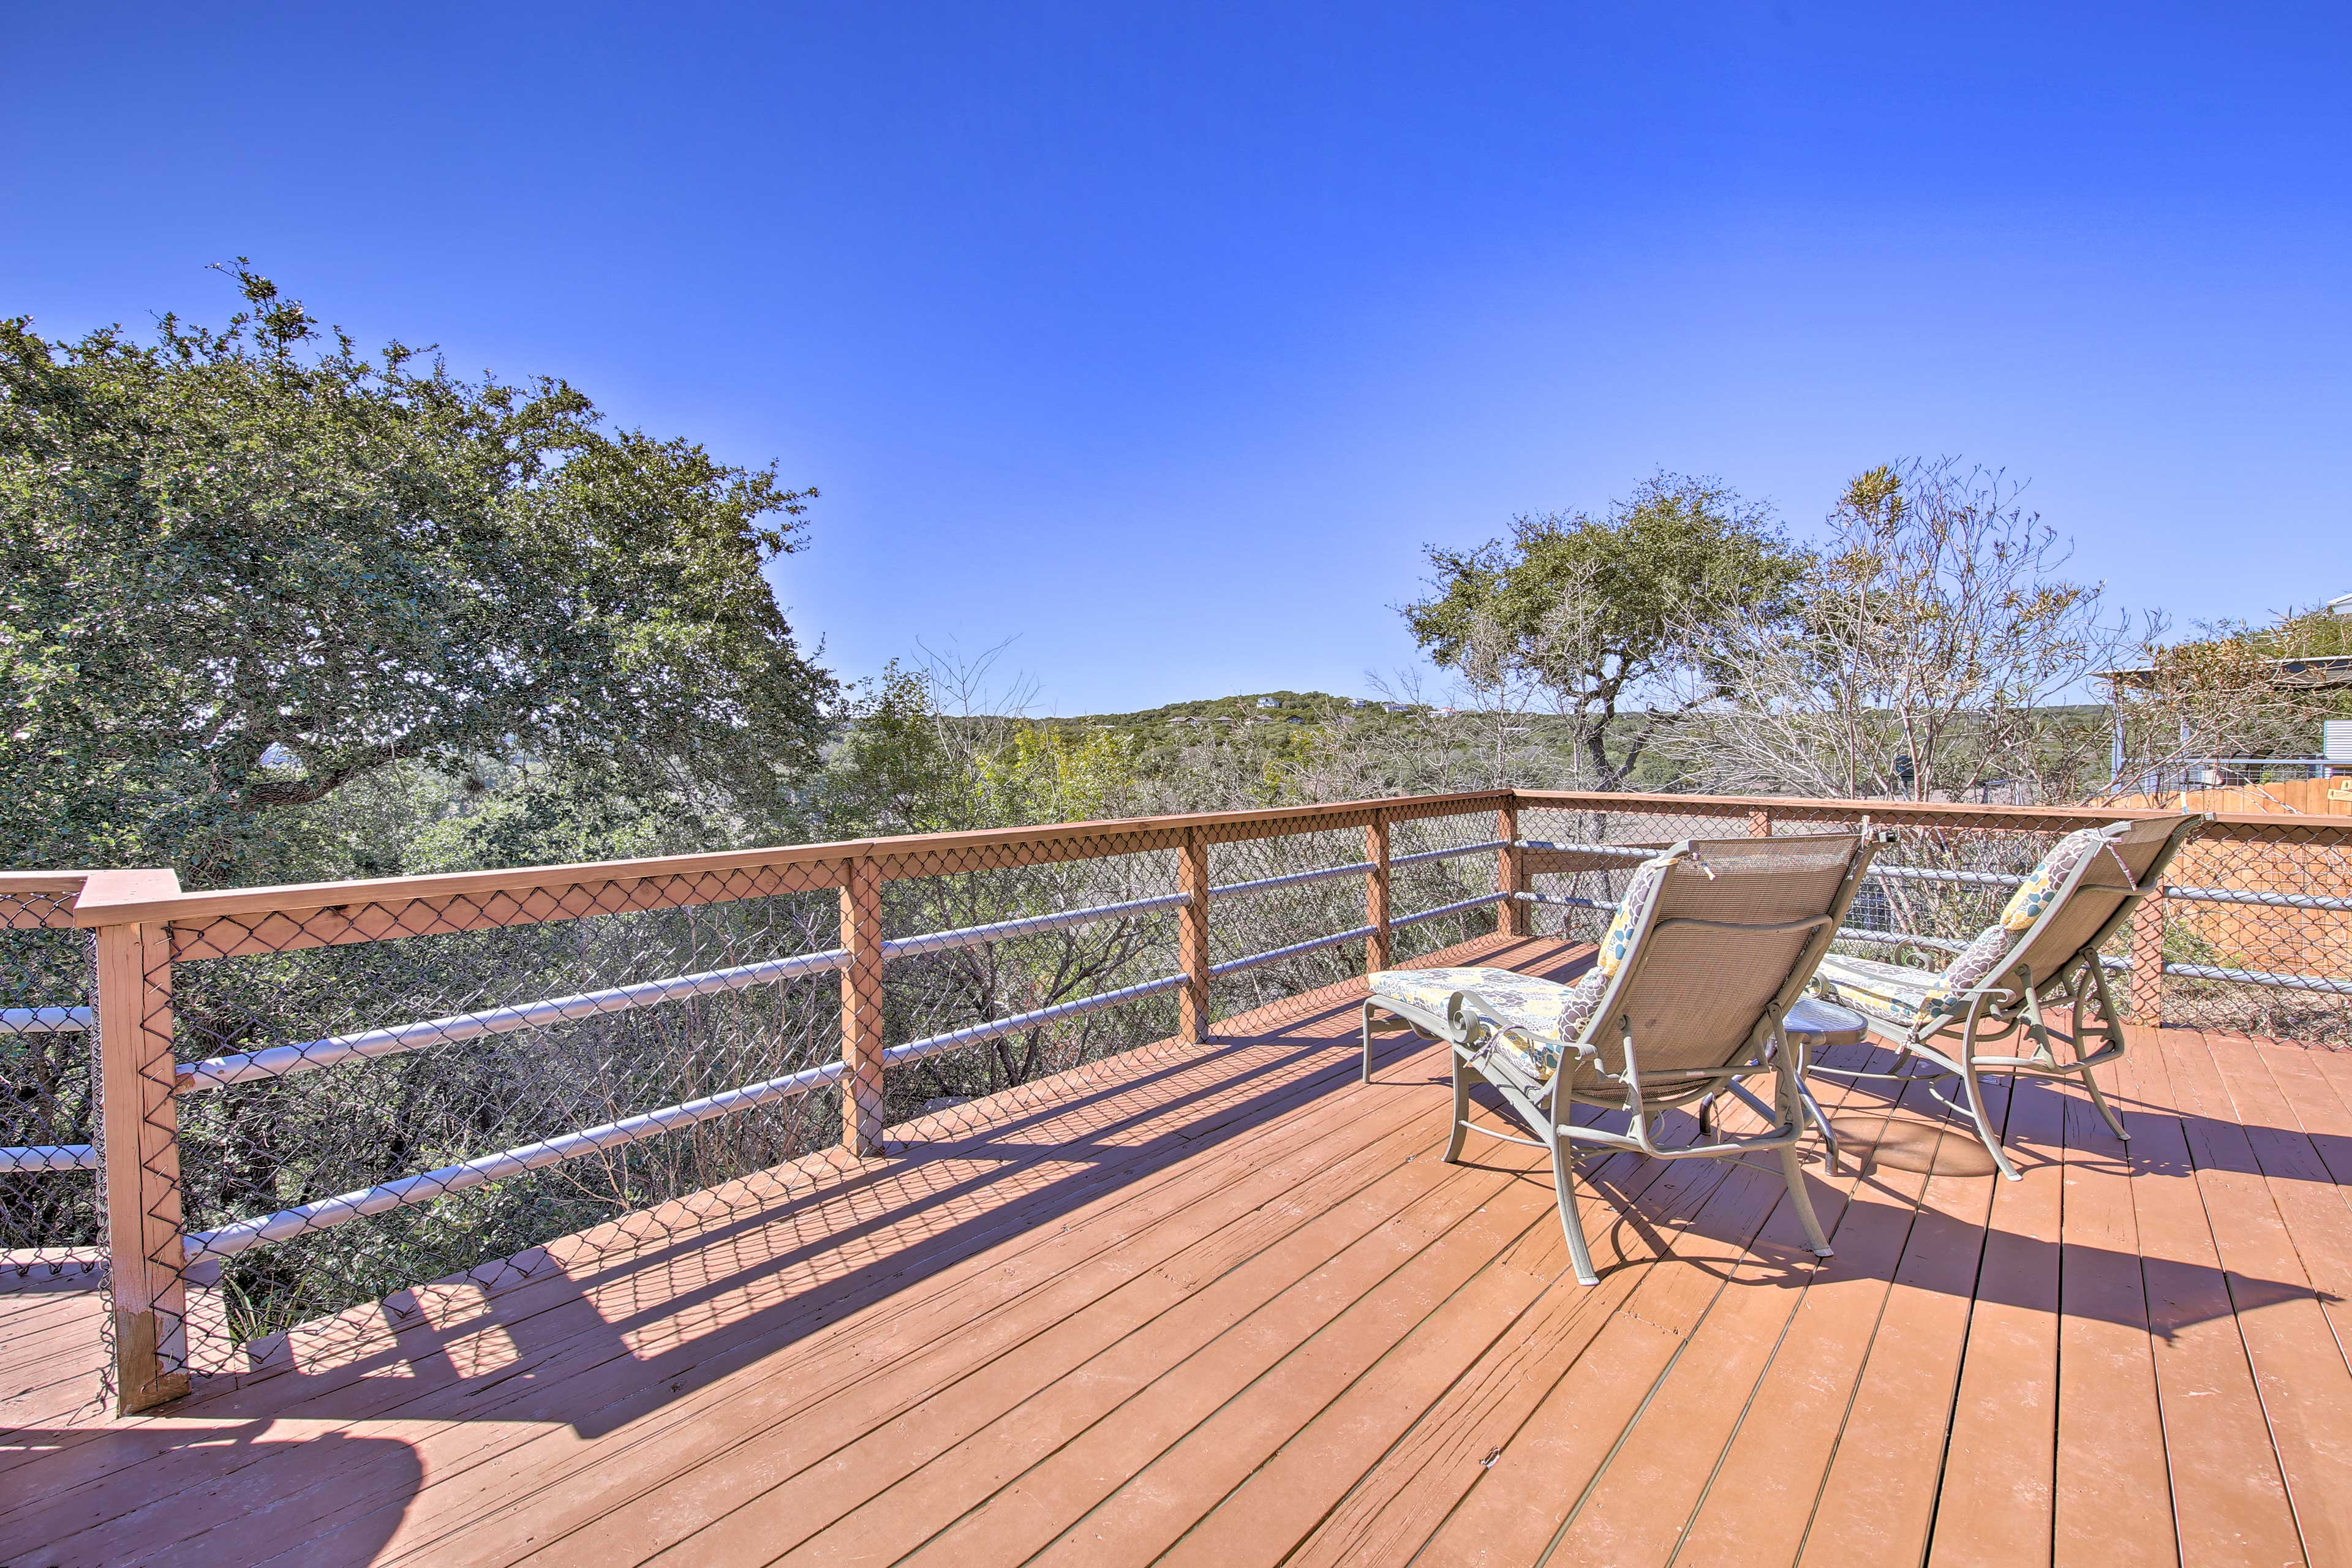 Lounge on the deck and take in the Texas sun.